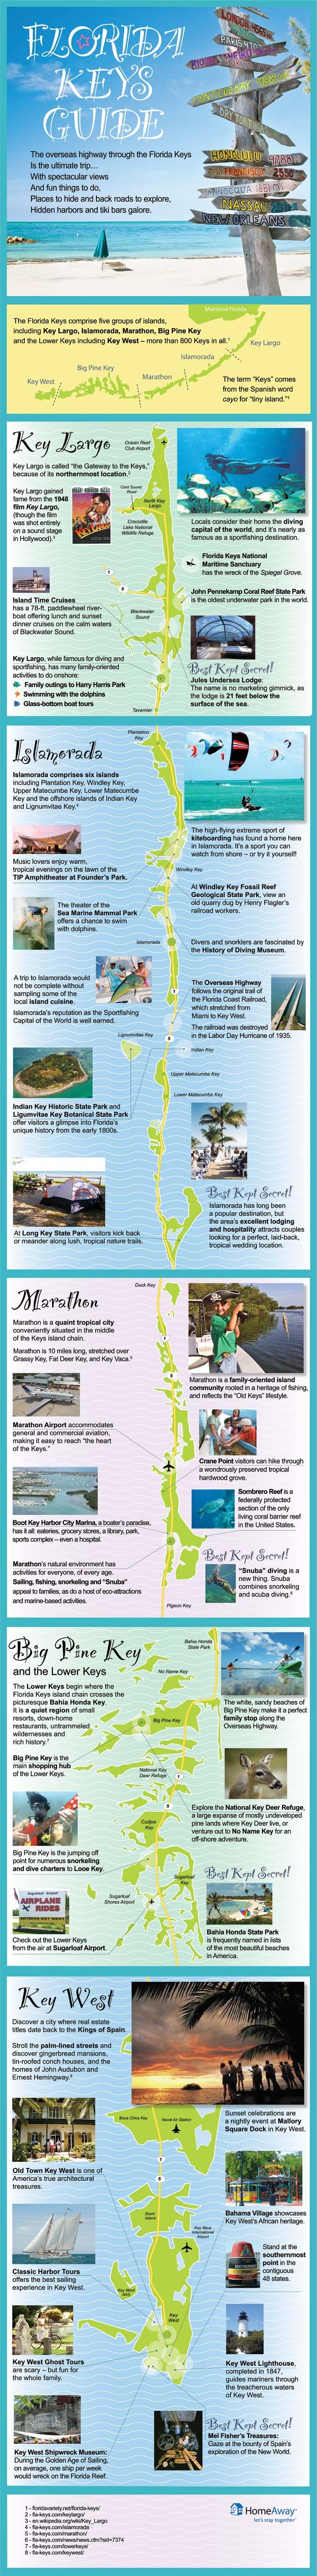 Where to Go in the Florida Keys - There are five groups of islands - Upper, Central, and Lower. Top islands include Key Largo, Islamorada, Marathon, Big Pine Key, and Key West. But there are 800+ islands in all! [Infographic]